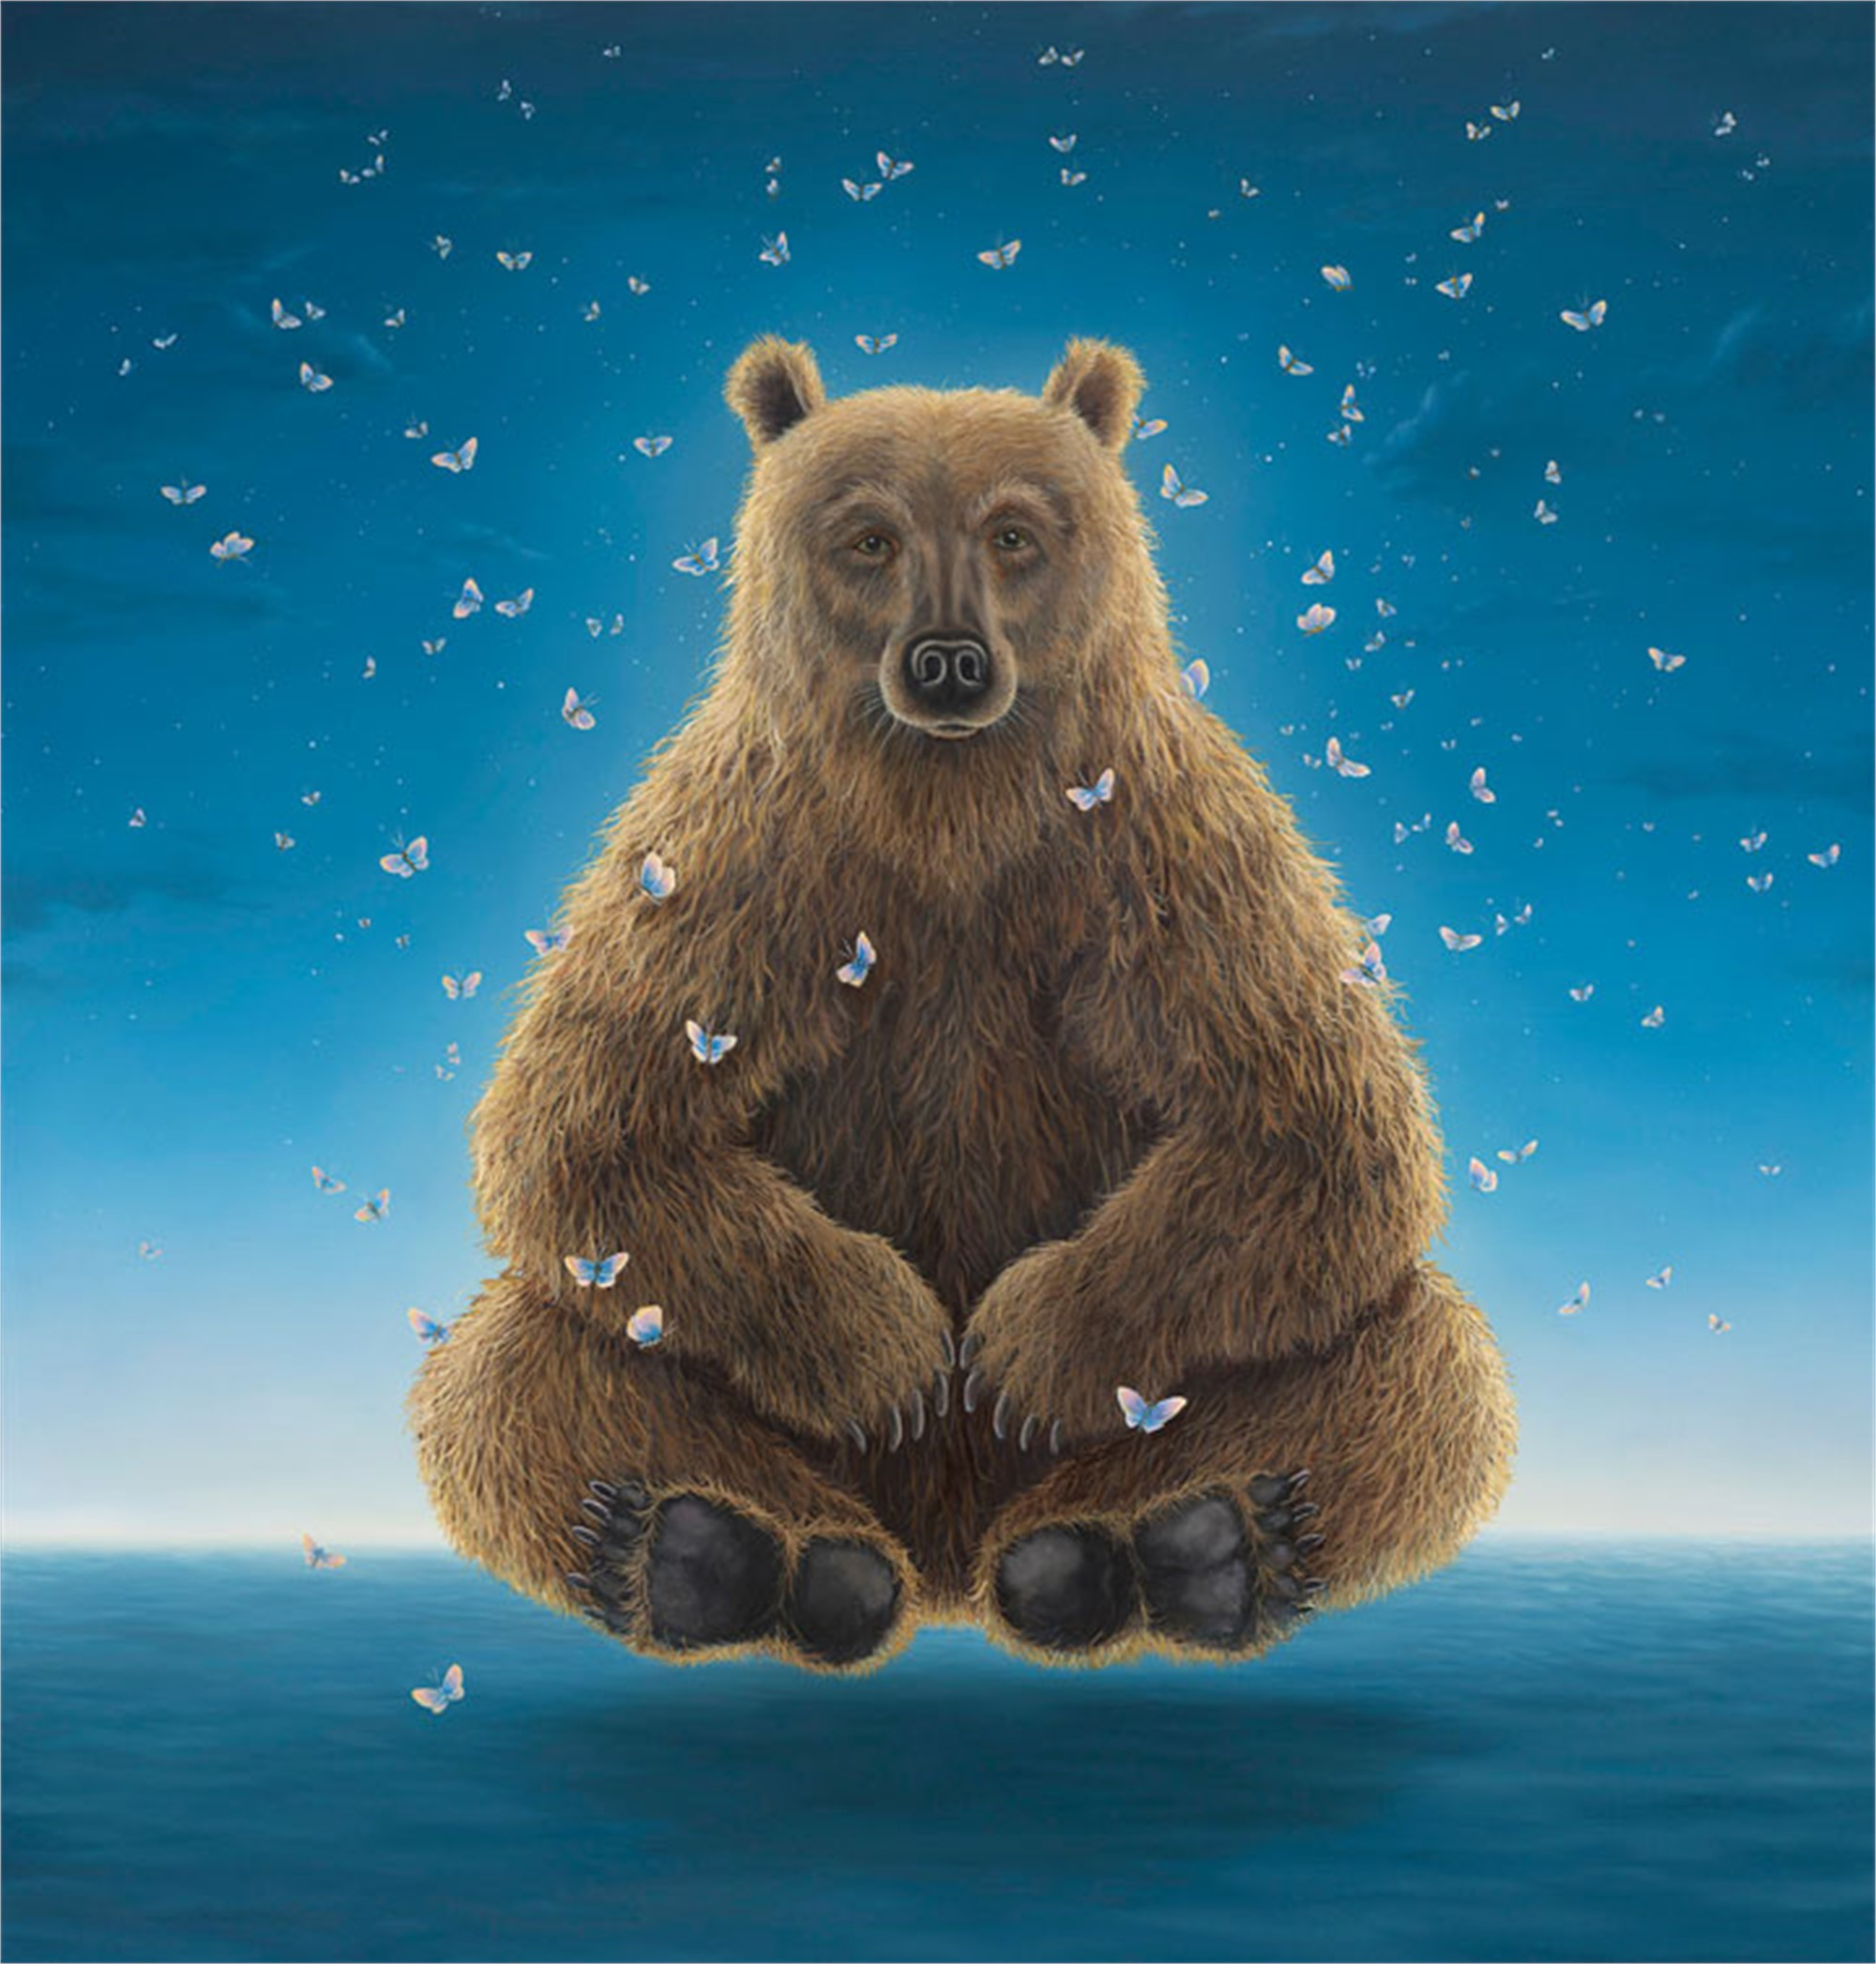 Sage Of The Night (Small Works) by Robert Bissell